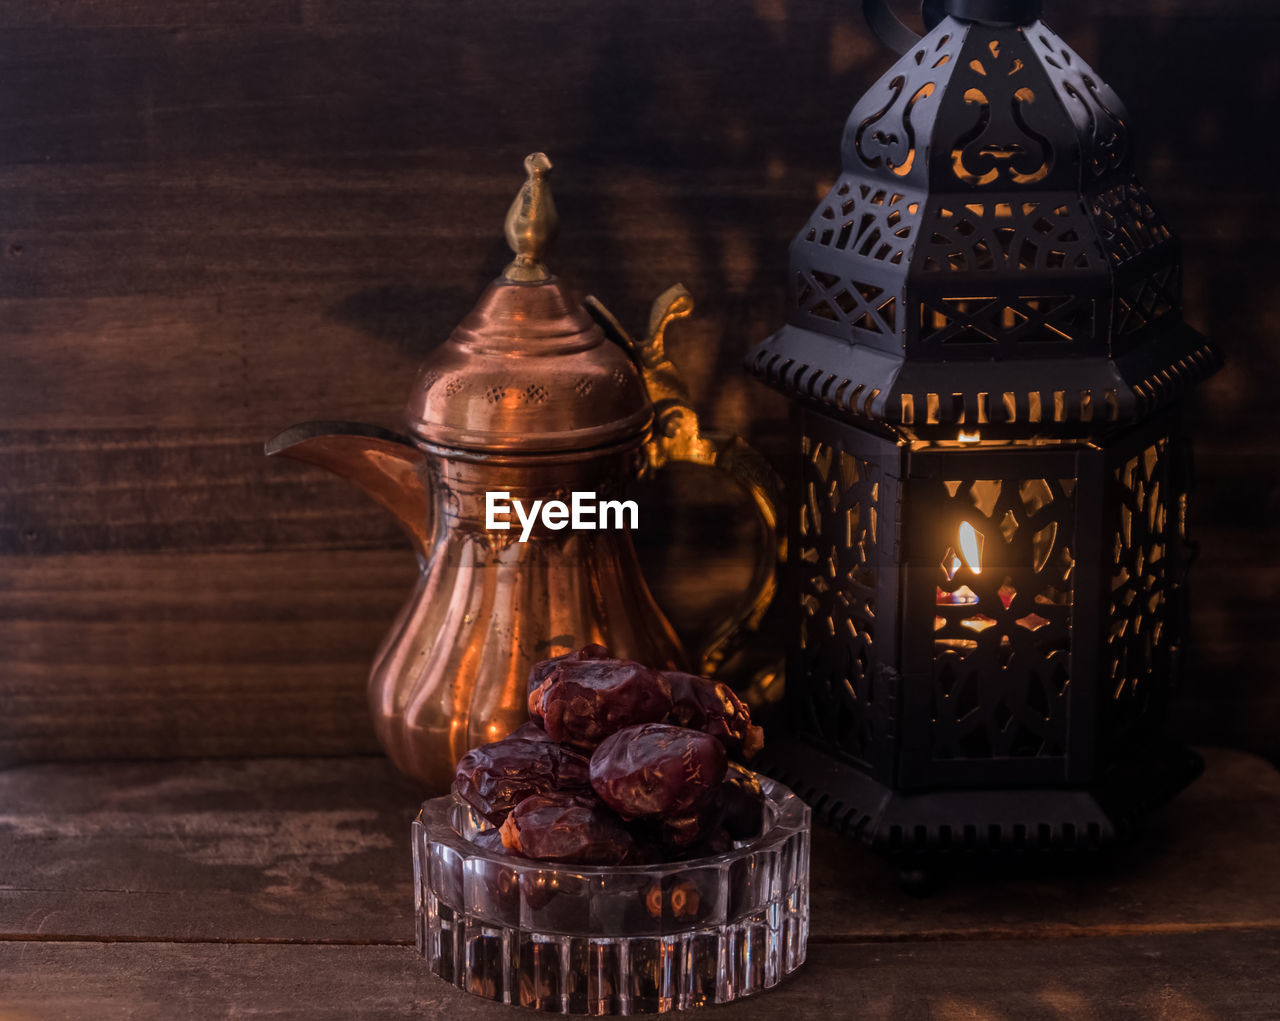 Close-up of antique teapot and lantern with raisins on table